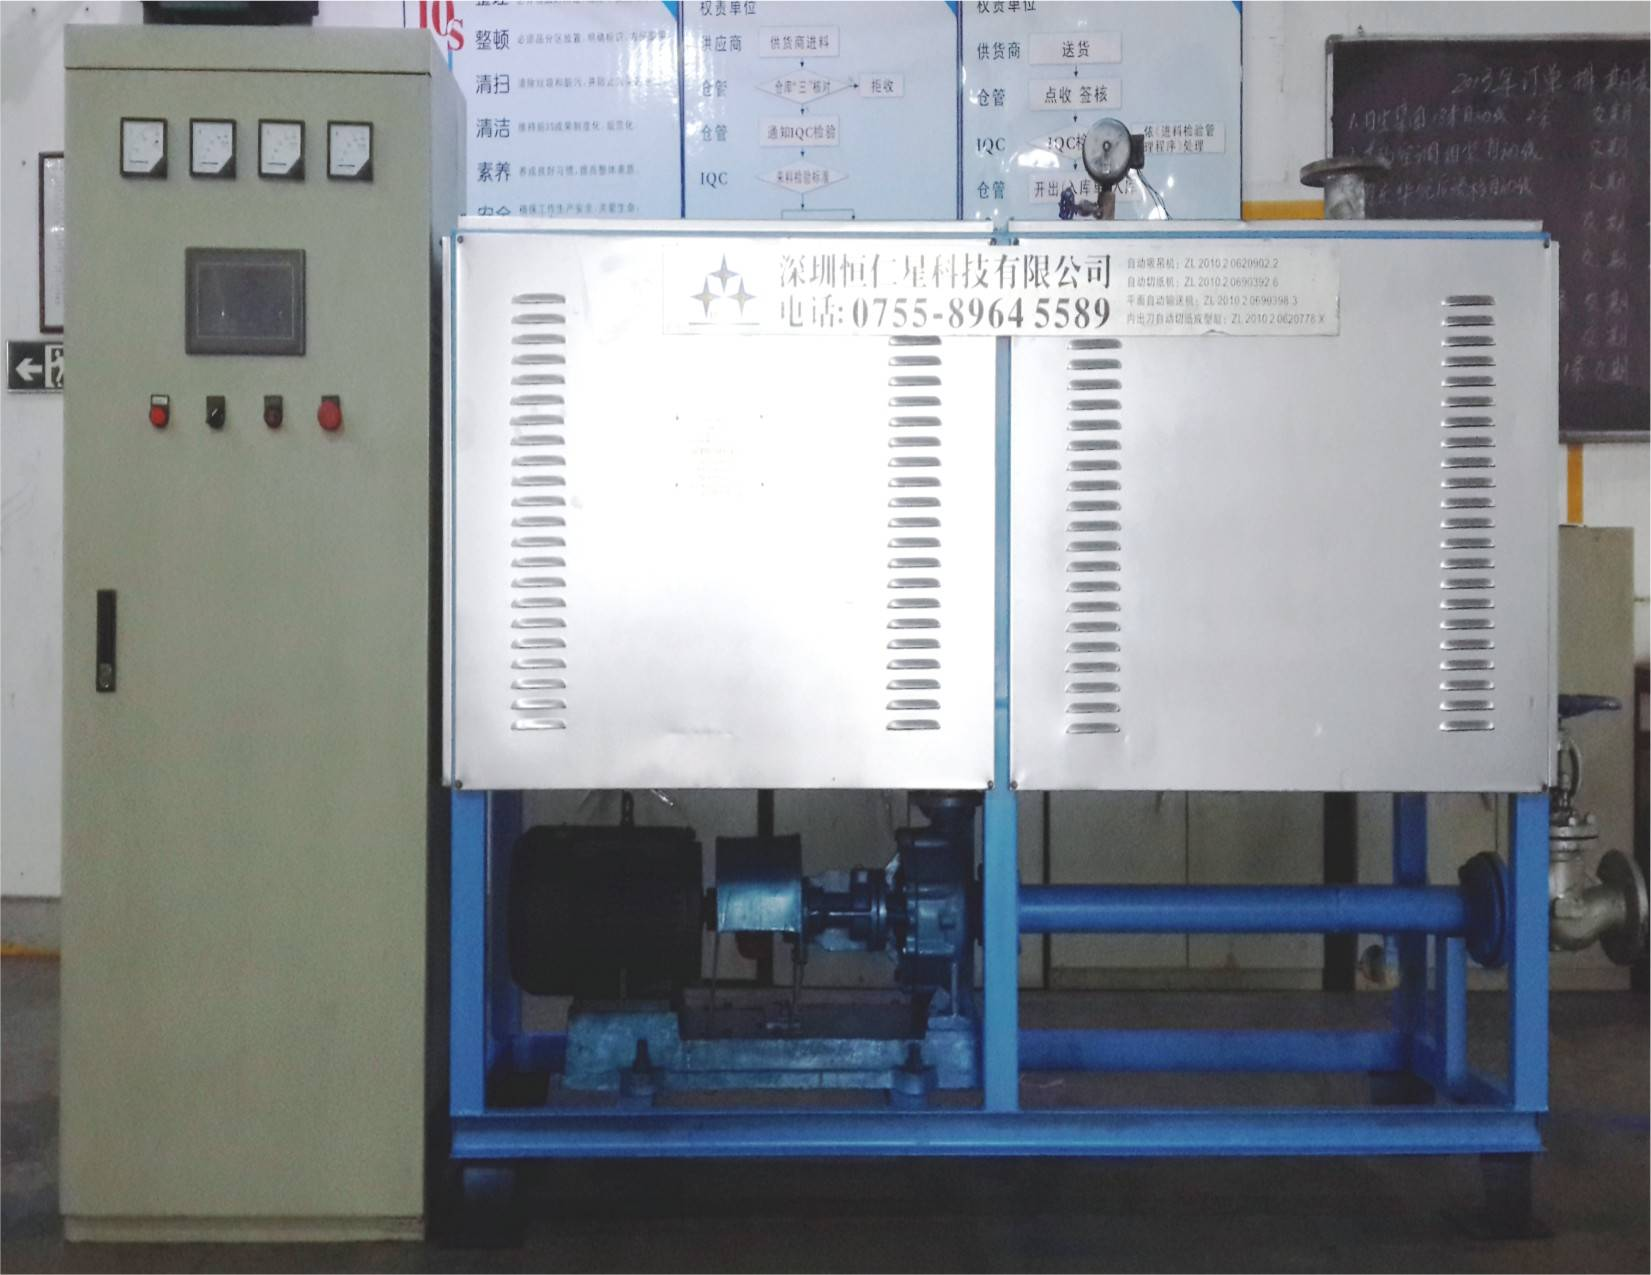 Automatic Electric Heating Fumace Equipment for Paperboard